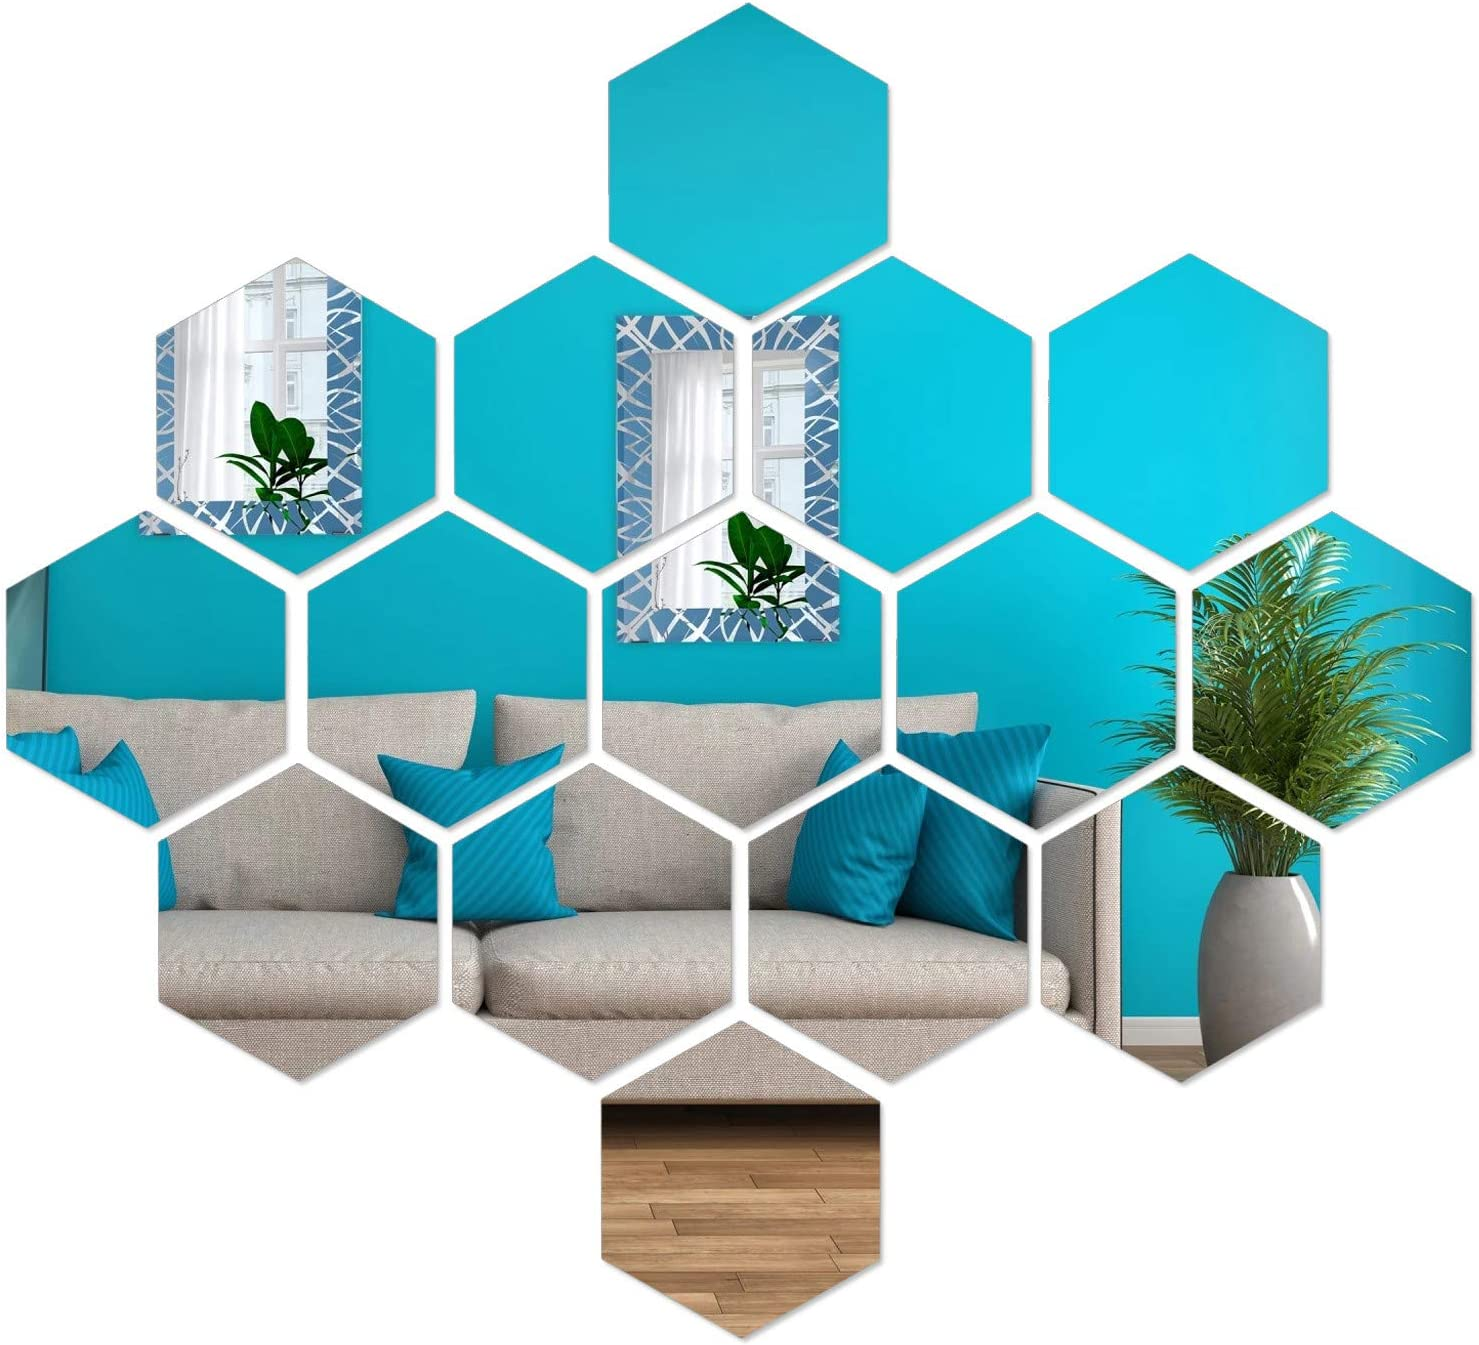 "15 Pieces Self Adhesive Acrylic Mirror Stickers Sheet, Flexible Non Glass Mirror Tiles for Home Wall Decor, Hexagon - 3.43"" x 6.85"" x 5.9"""